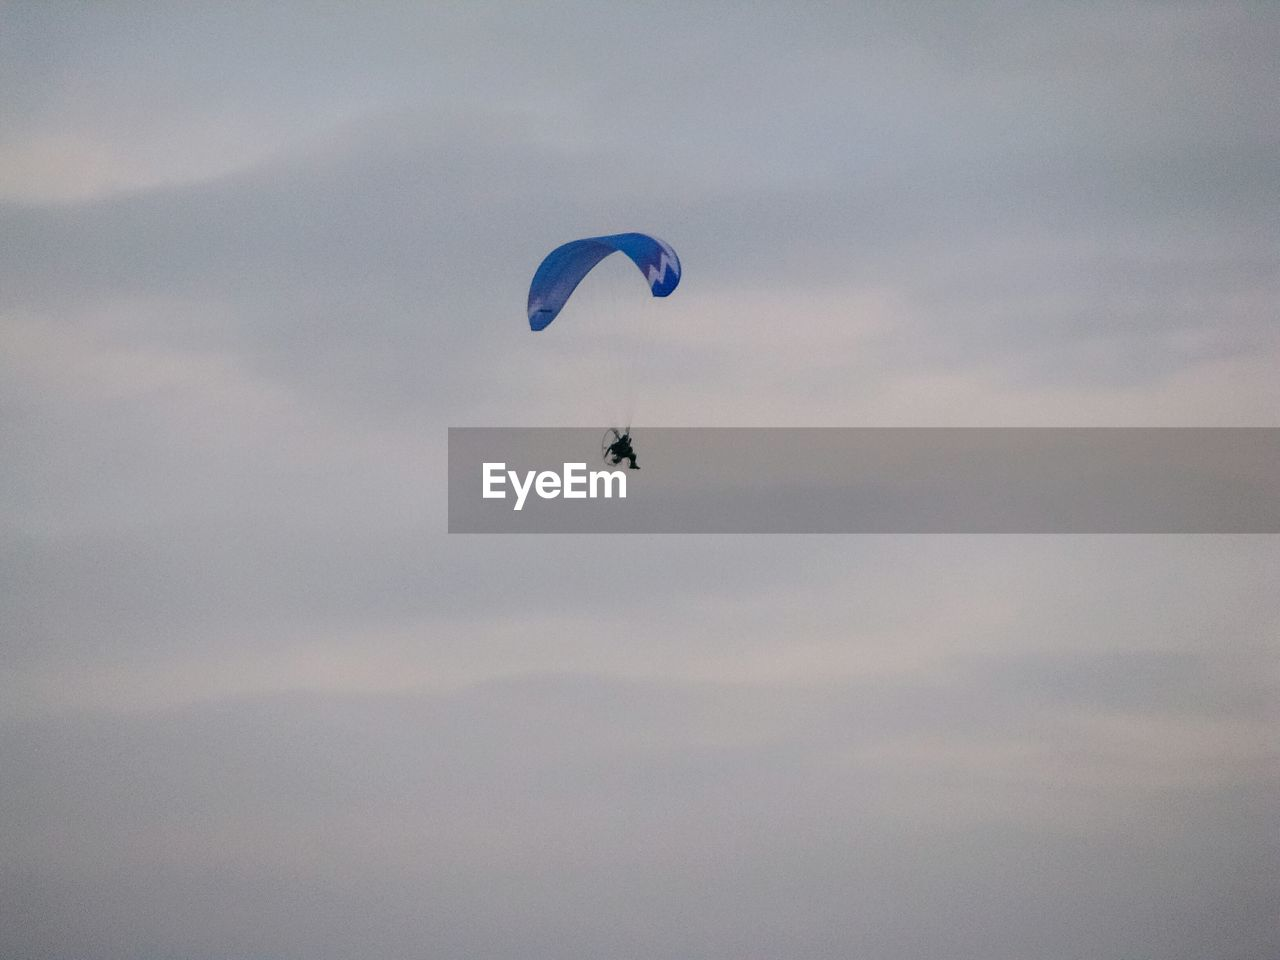 mid-air, extreme sports, parachute, low angle view, flying, adventure, outdoors, day, nature, sky, real people, one person, beauty in nature, paragliding